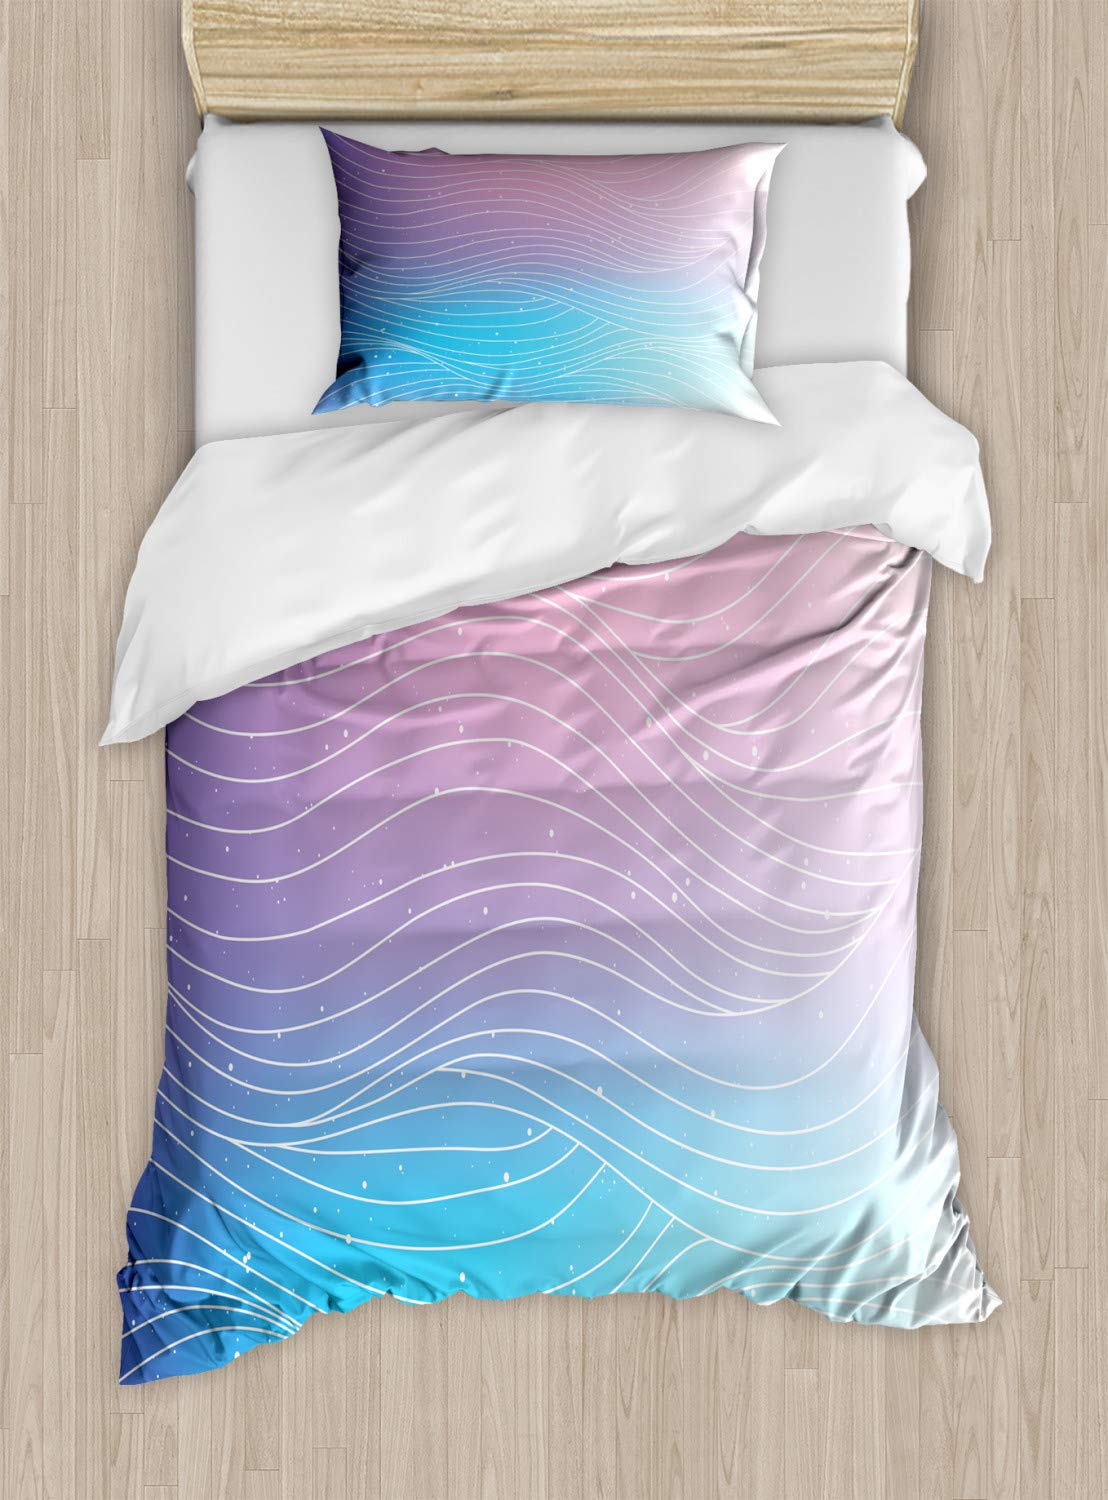 Ambesonne Abstract Duvet Cover Set, Nebula Sky Inspired Ombre Effect Pattern with Waves and Spots, Decorative 2 Piece Bedding Set with 1 Pillow Sham, Twin Size, Blue Violet